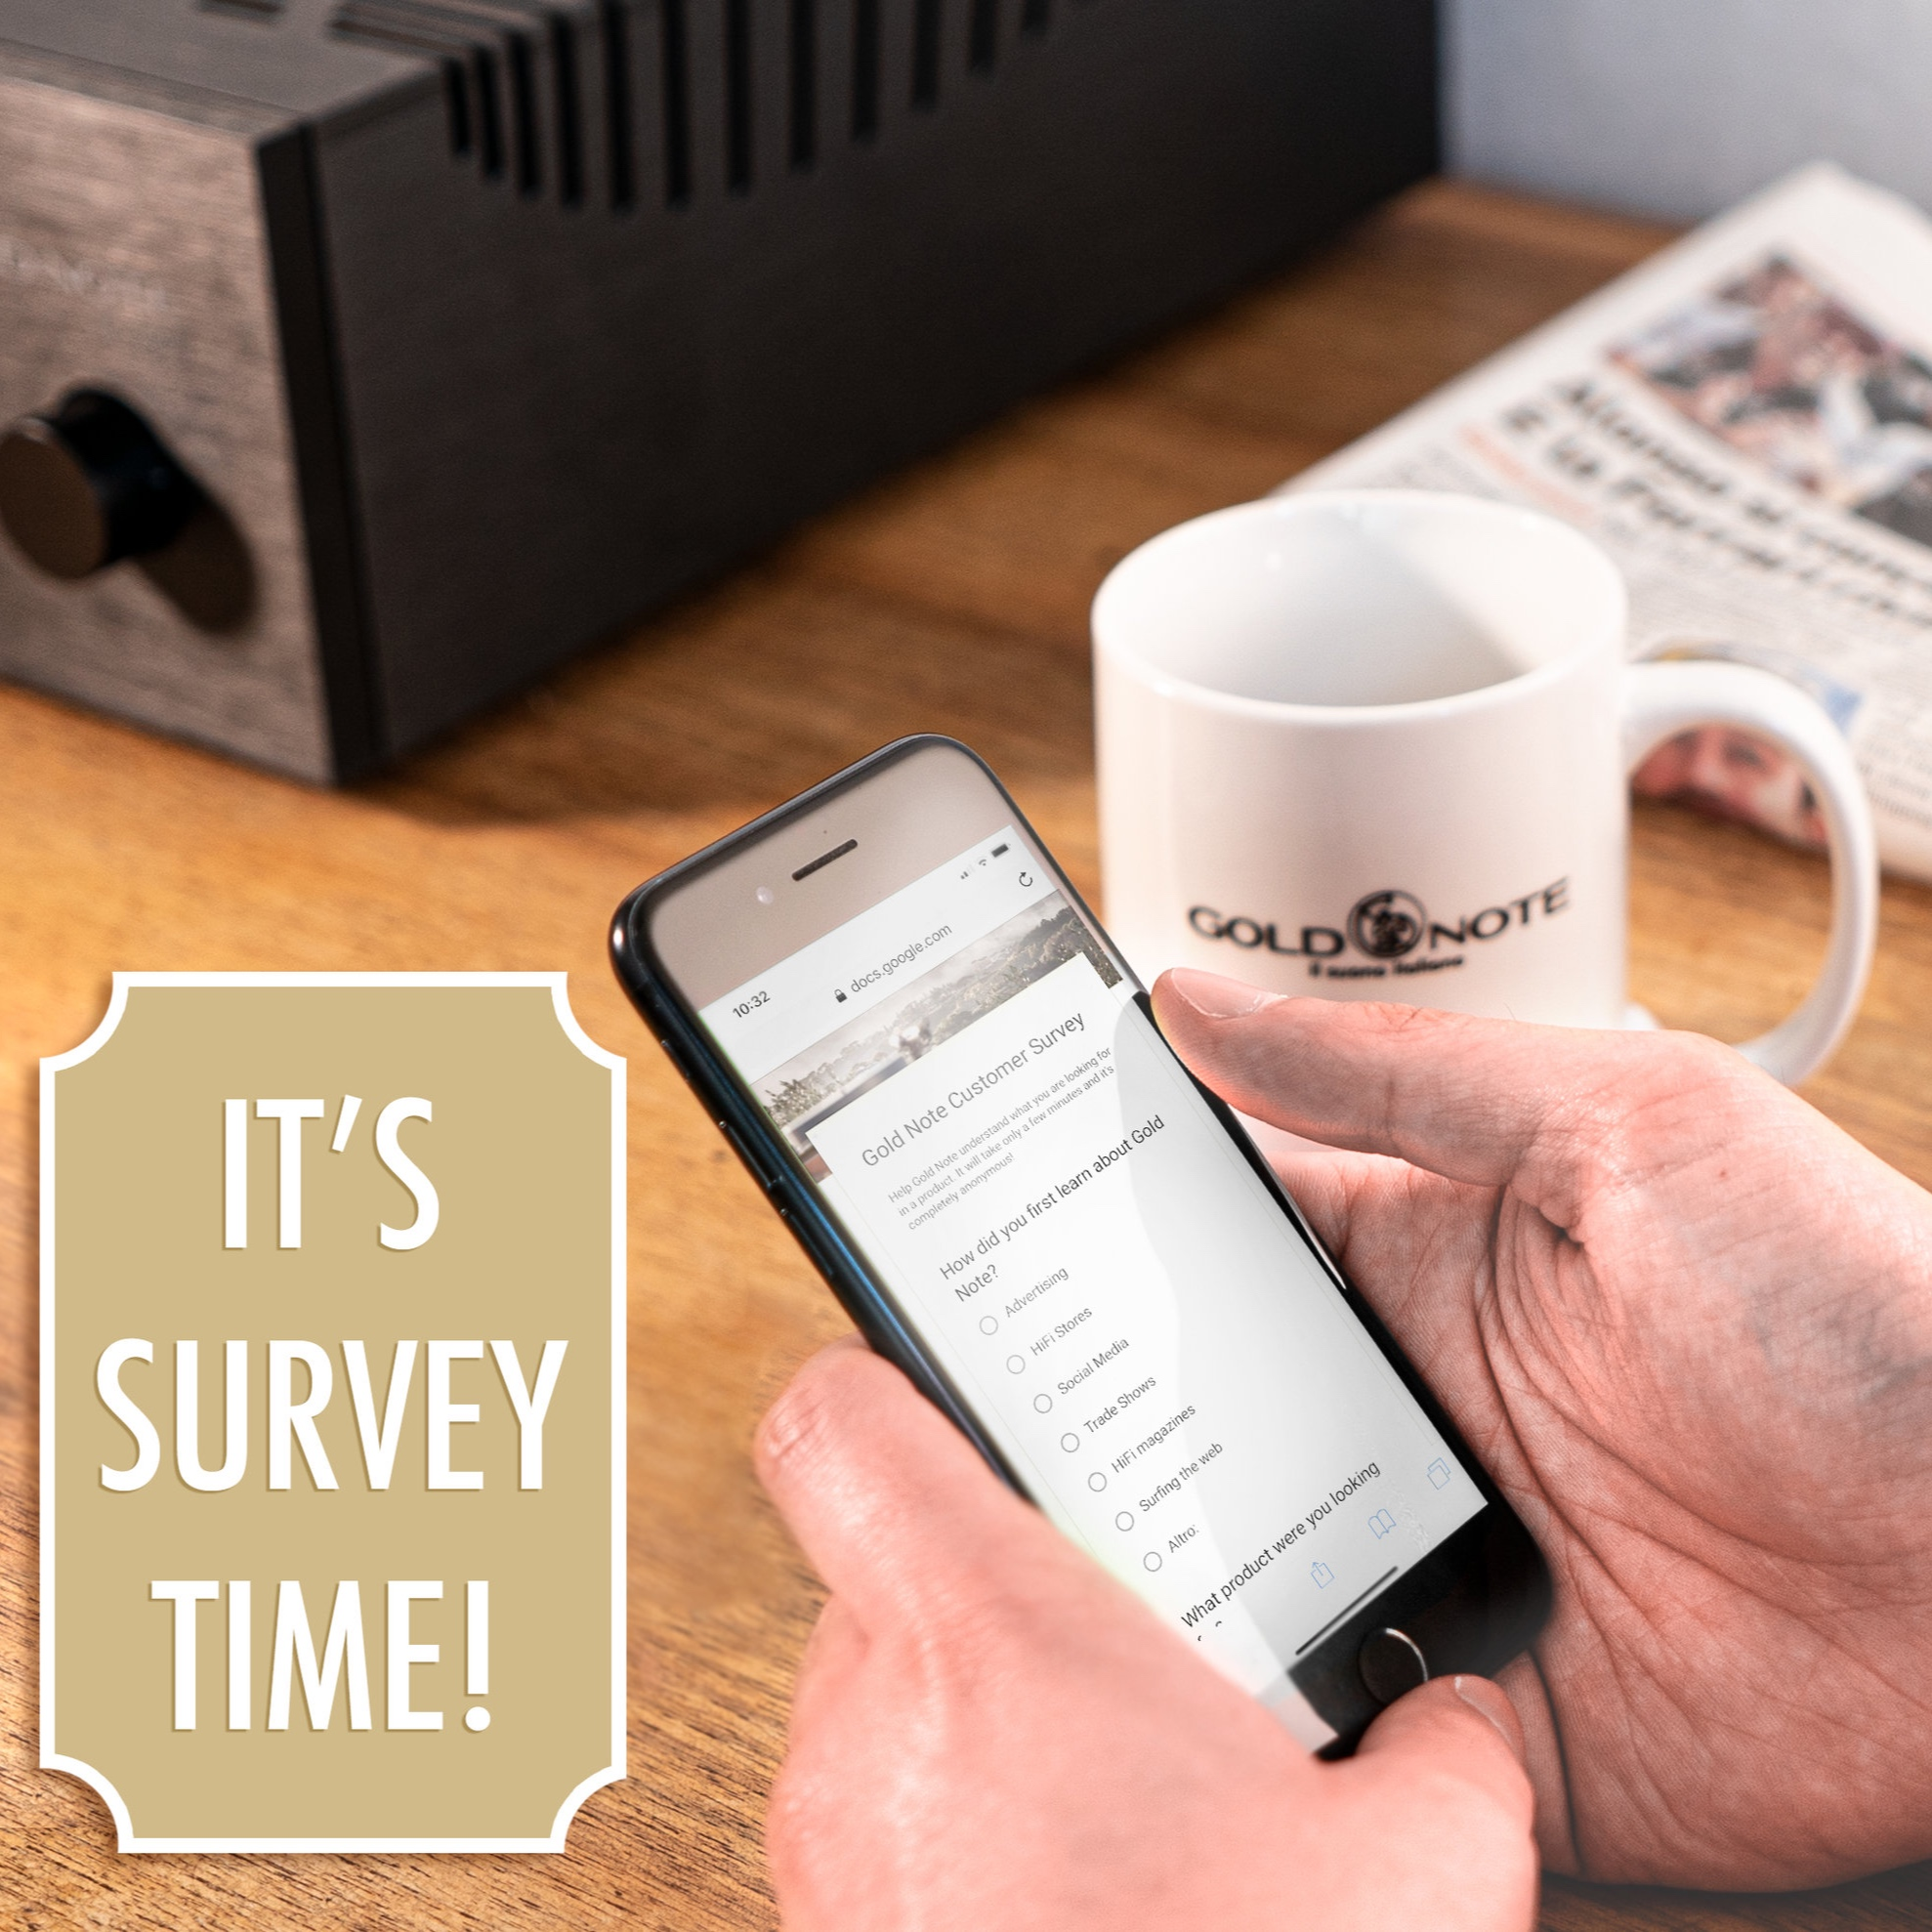 ....Participate in our online survey..Partecipi al nostro questionnaire.... - ....Tell us what you think about our products. It's completely anonymous and takes only a few minutes! THANK YOU!..Raccontaci cosa ne pensi dei nostri prodotti. E completamente anonimo e ci vuole solo un attimo. Grazie!....To the survey..Vai al sondaggio https://forms.gle/cqfQZLHuK9R3DHxaA....